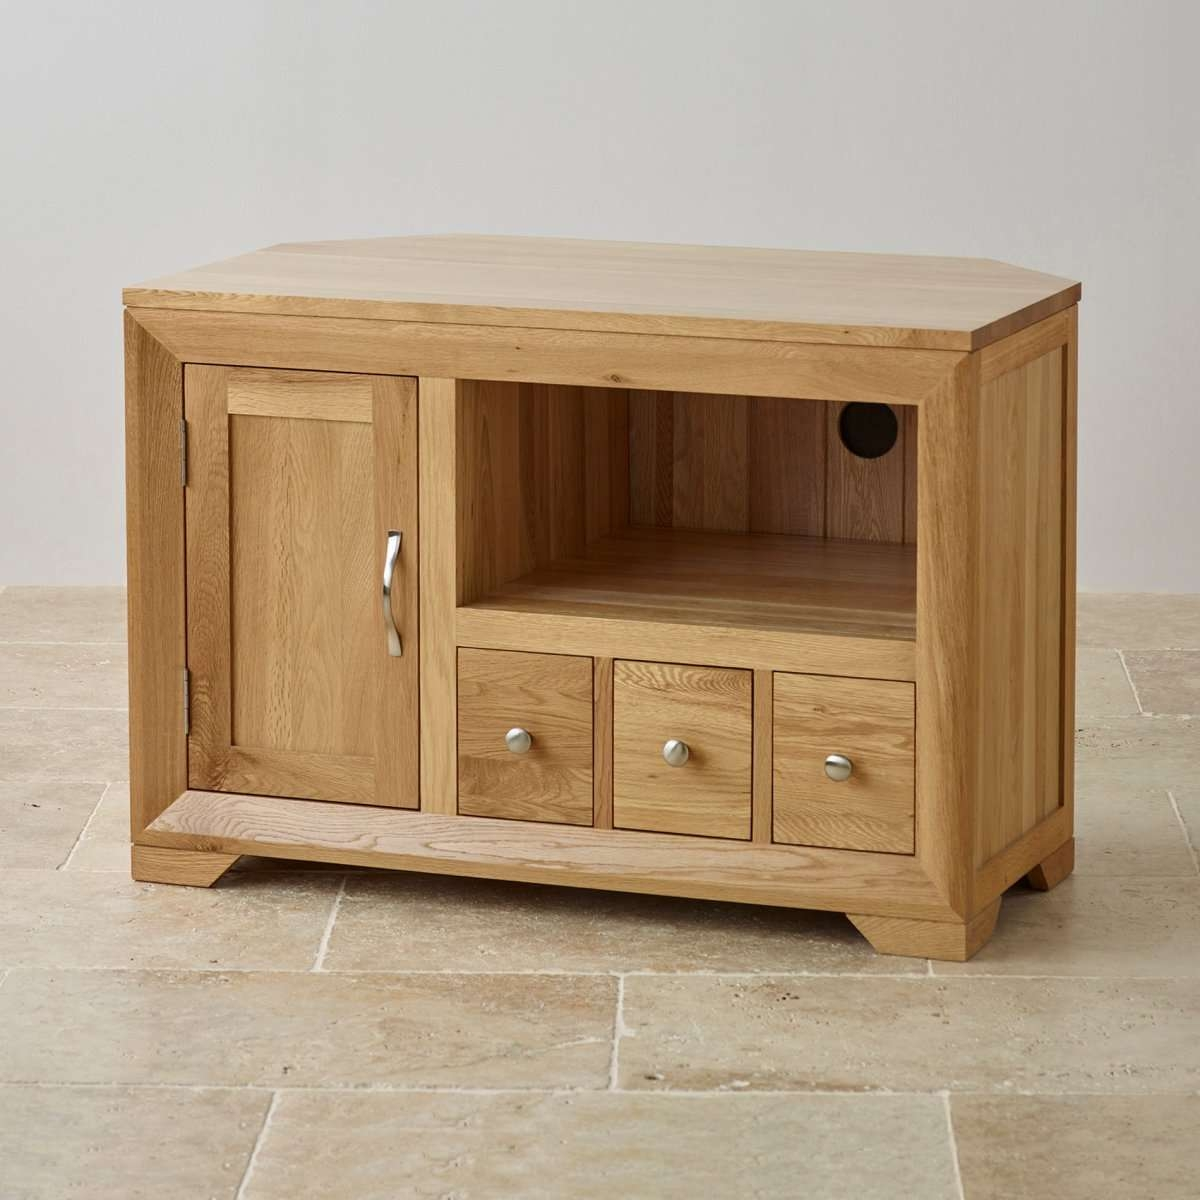 Bevel Small Corner Tv Cabinet In Solid Oak | Oak Furniture Land Within Solid Oak Corner Tv Cabinets (View 2 of 20)